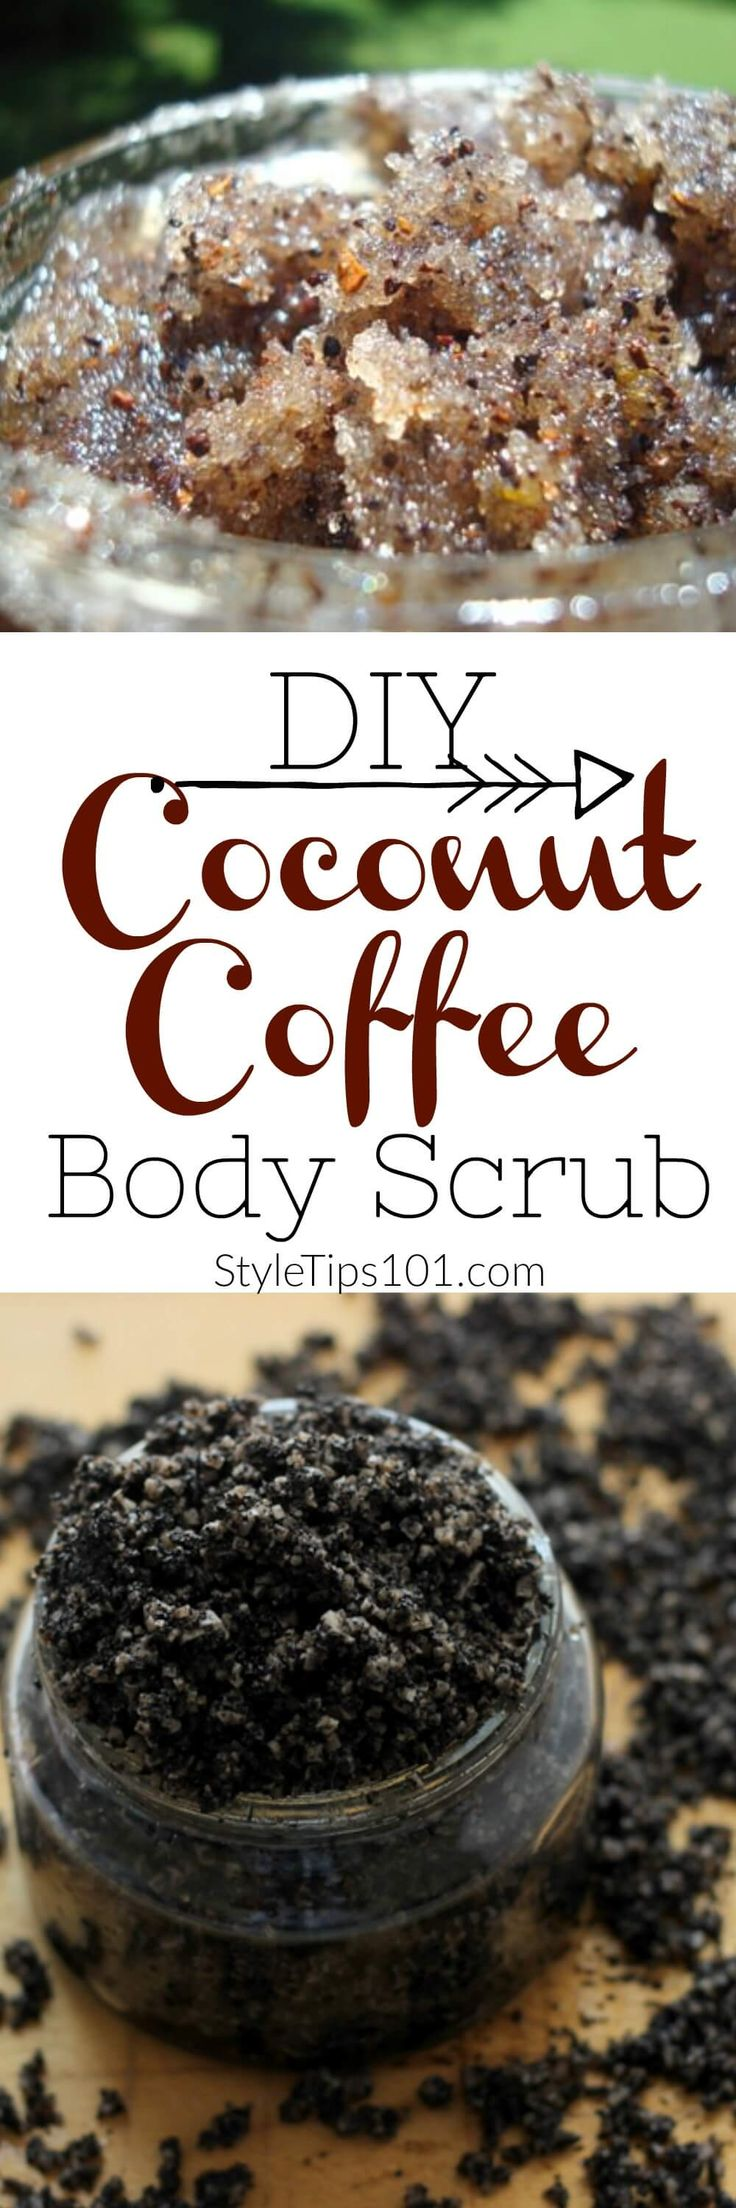 This coffee and coconut body scrub recipe uses all natural ingredients to give you a luxurious, but oh-so-cheap body scrub! via @styletips1o1